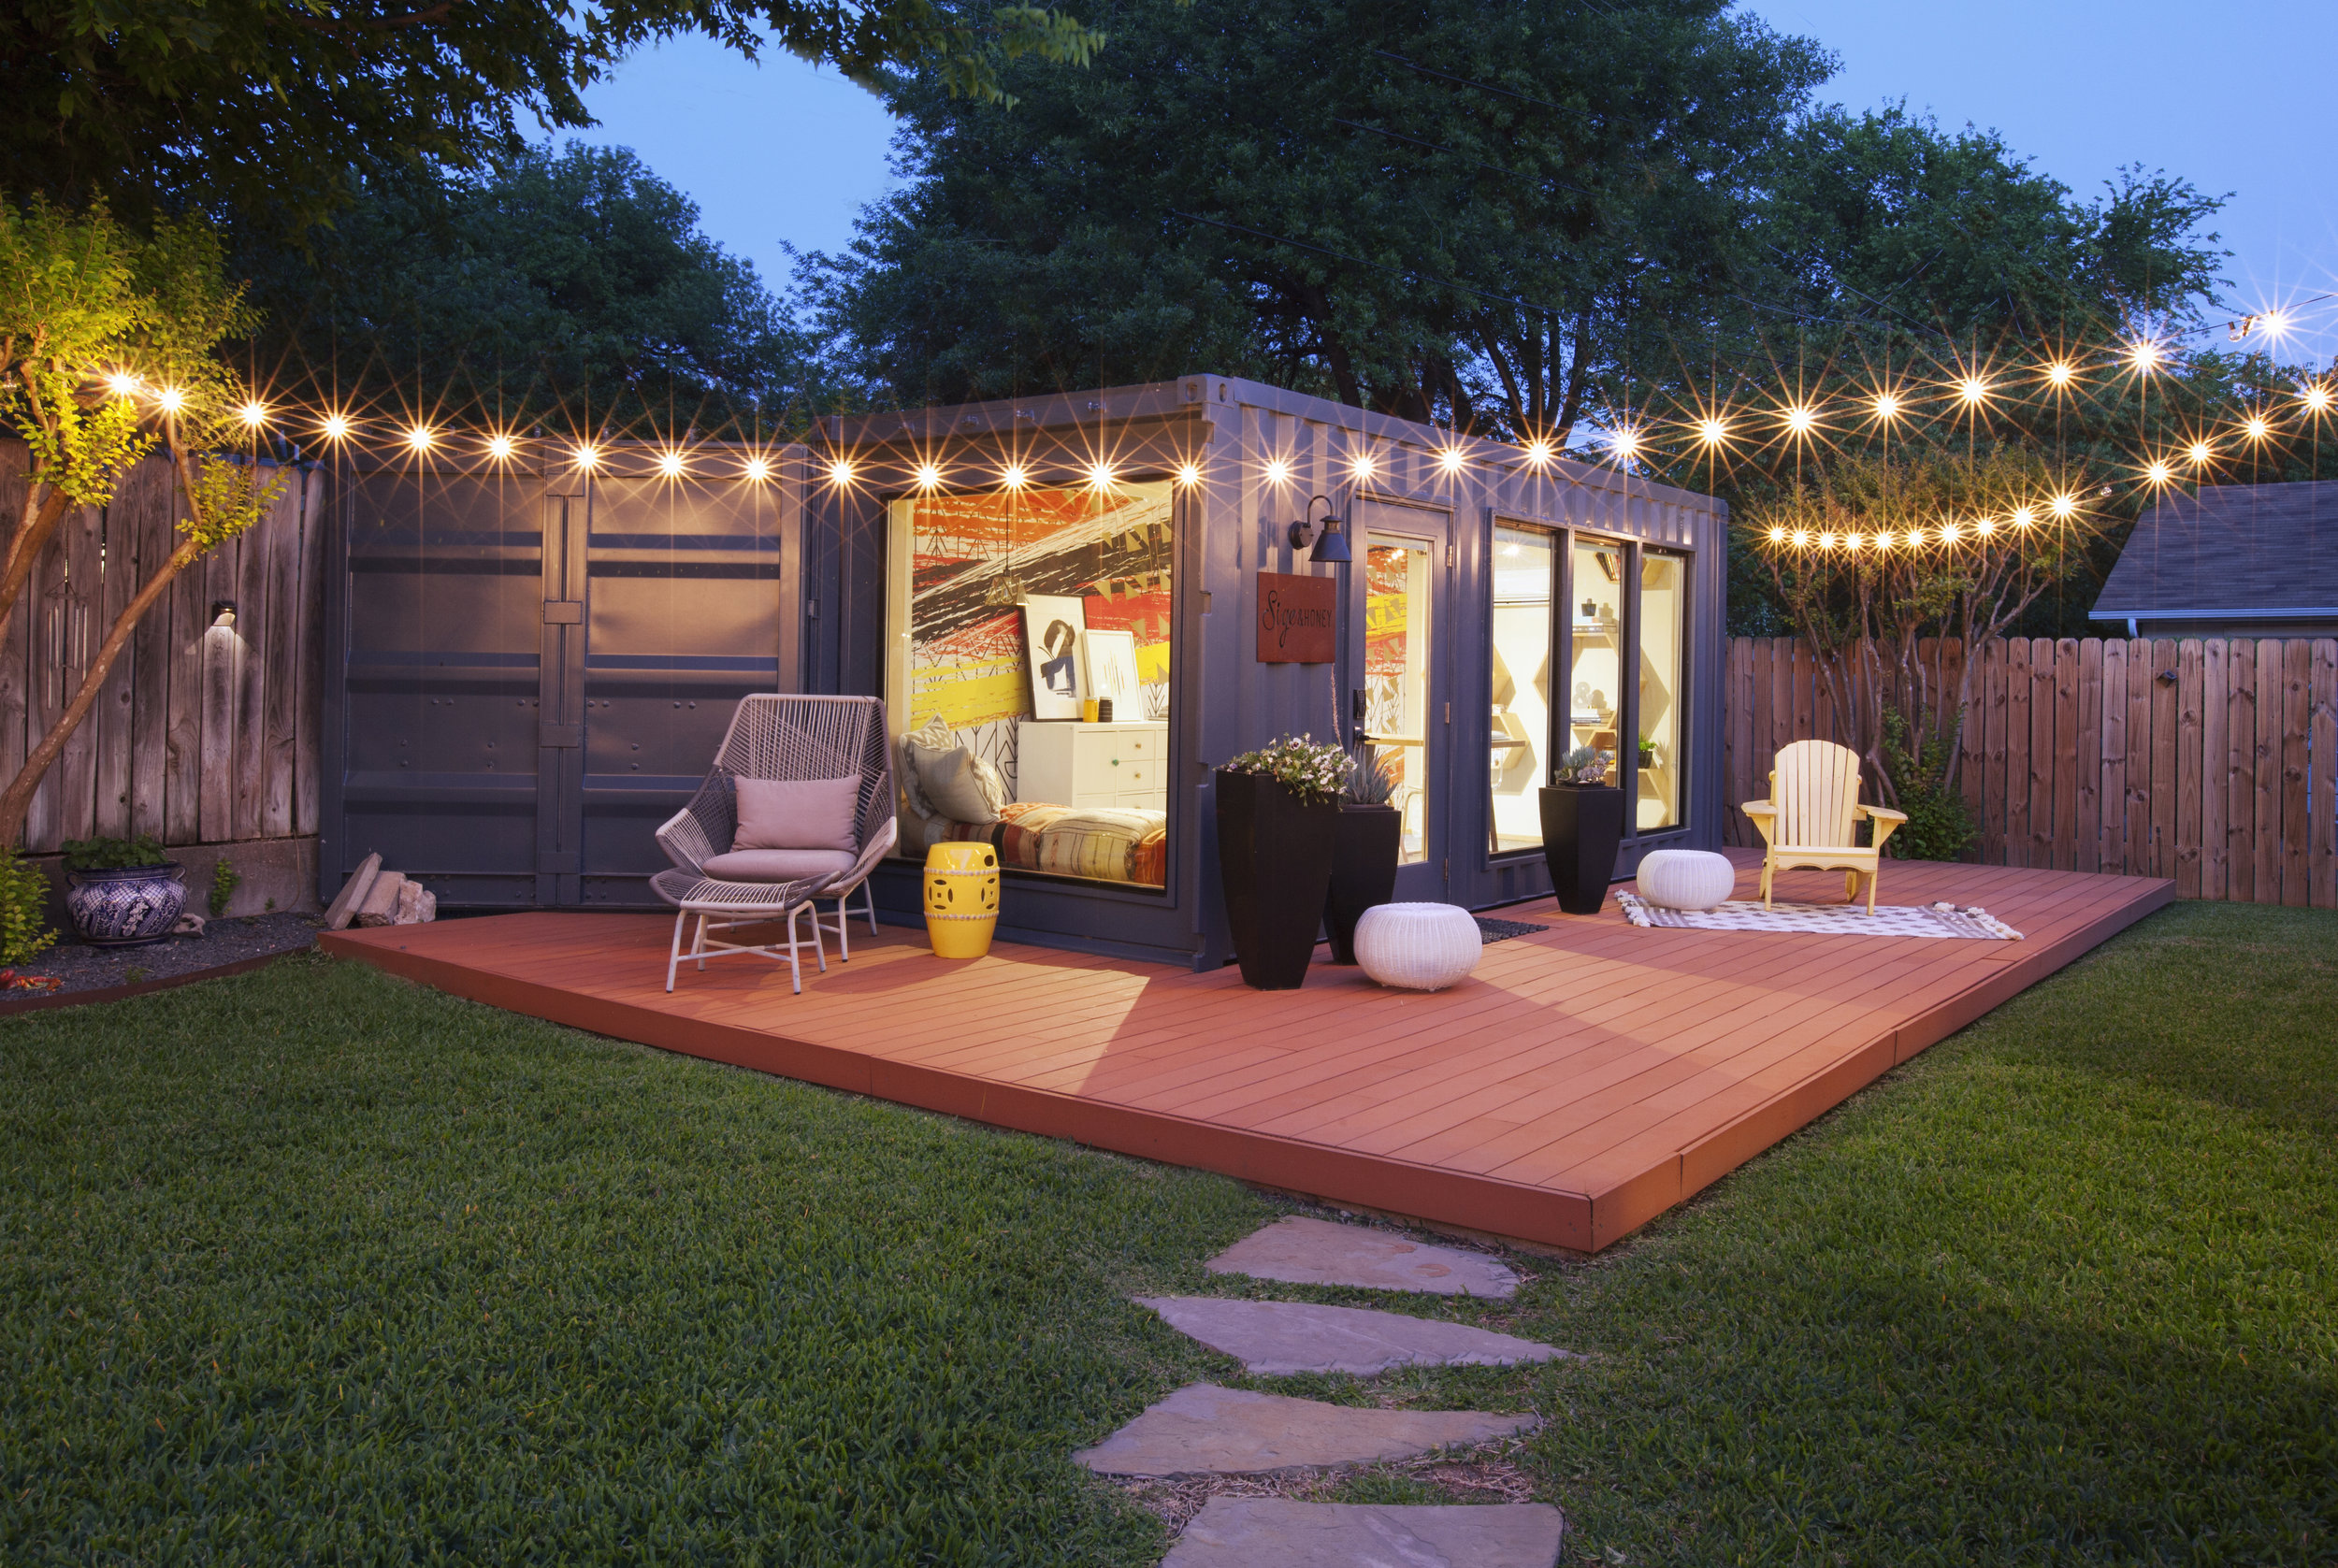 "Patrice was featured on HGTV ""Container Homes"" for this shipping container studio. She later started a company called Sige&Honey which focuses on repurposing shipping containers to living spaces."